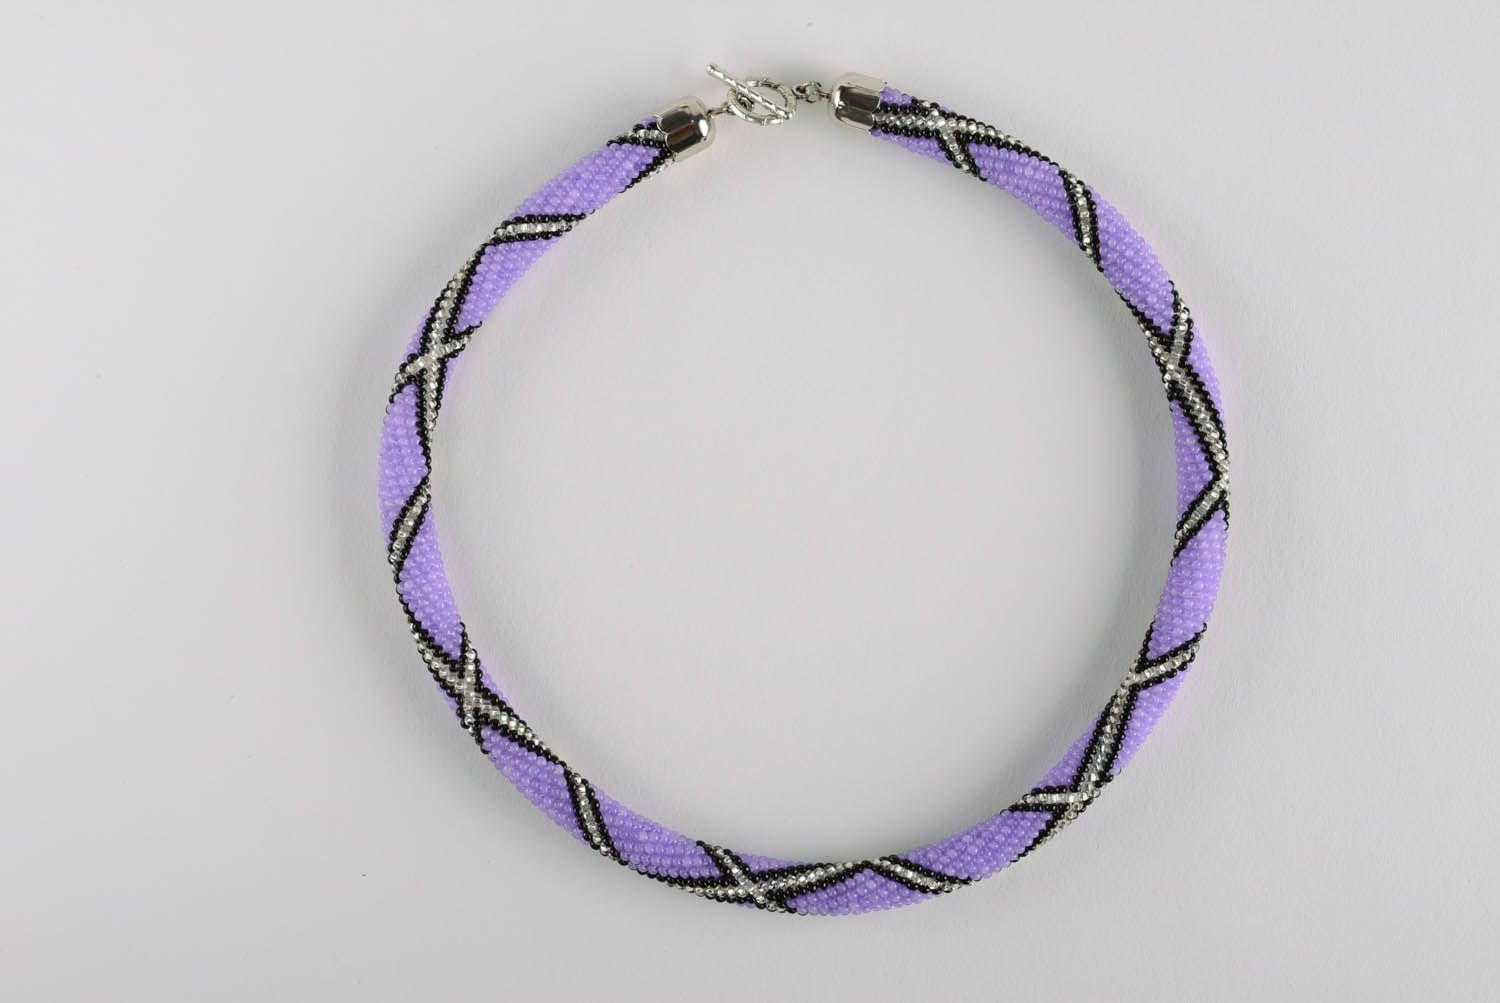 Purple beaded cord photo 4